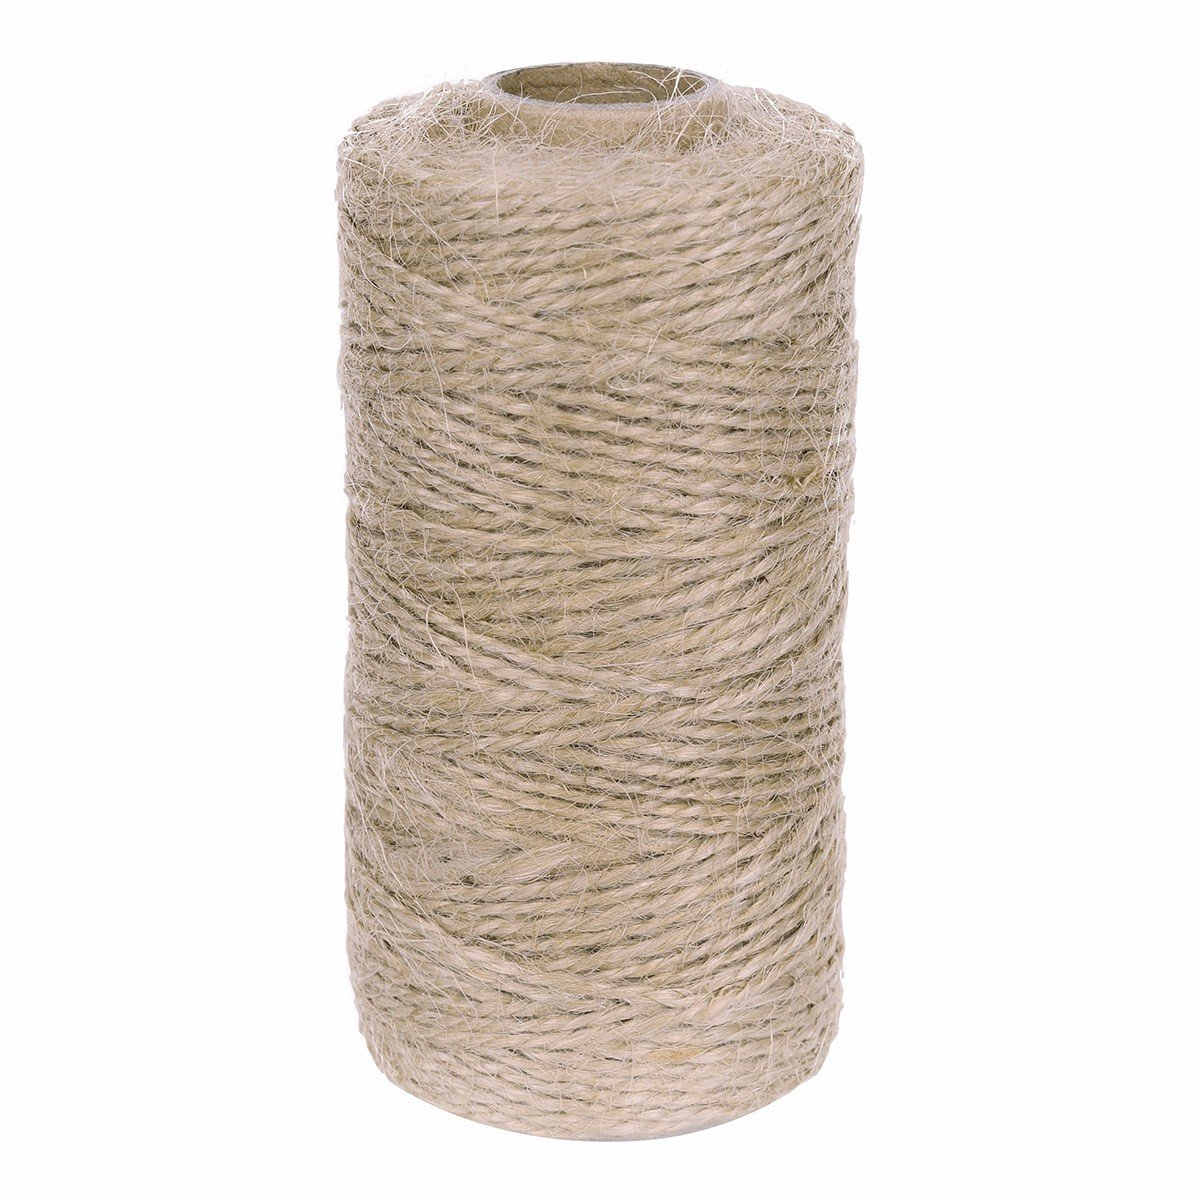 Freebily Natural Jute Twines Art and Crafts Linen String for Vintage Tags / Labels Tie Gardening Use 100M